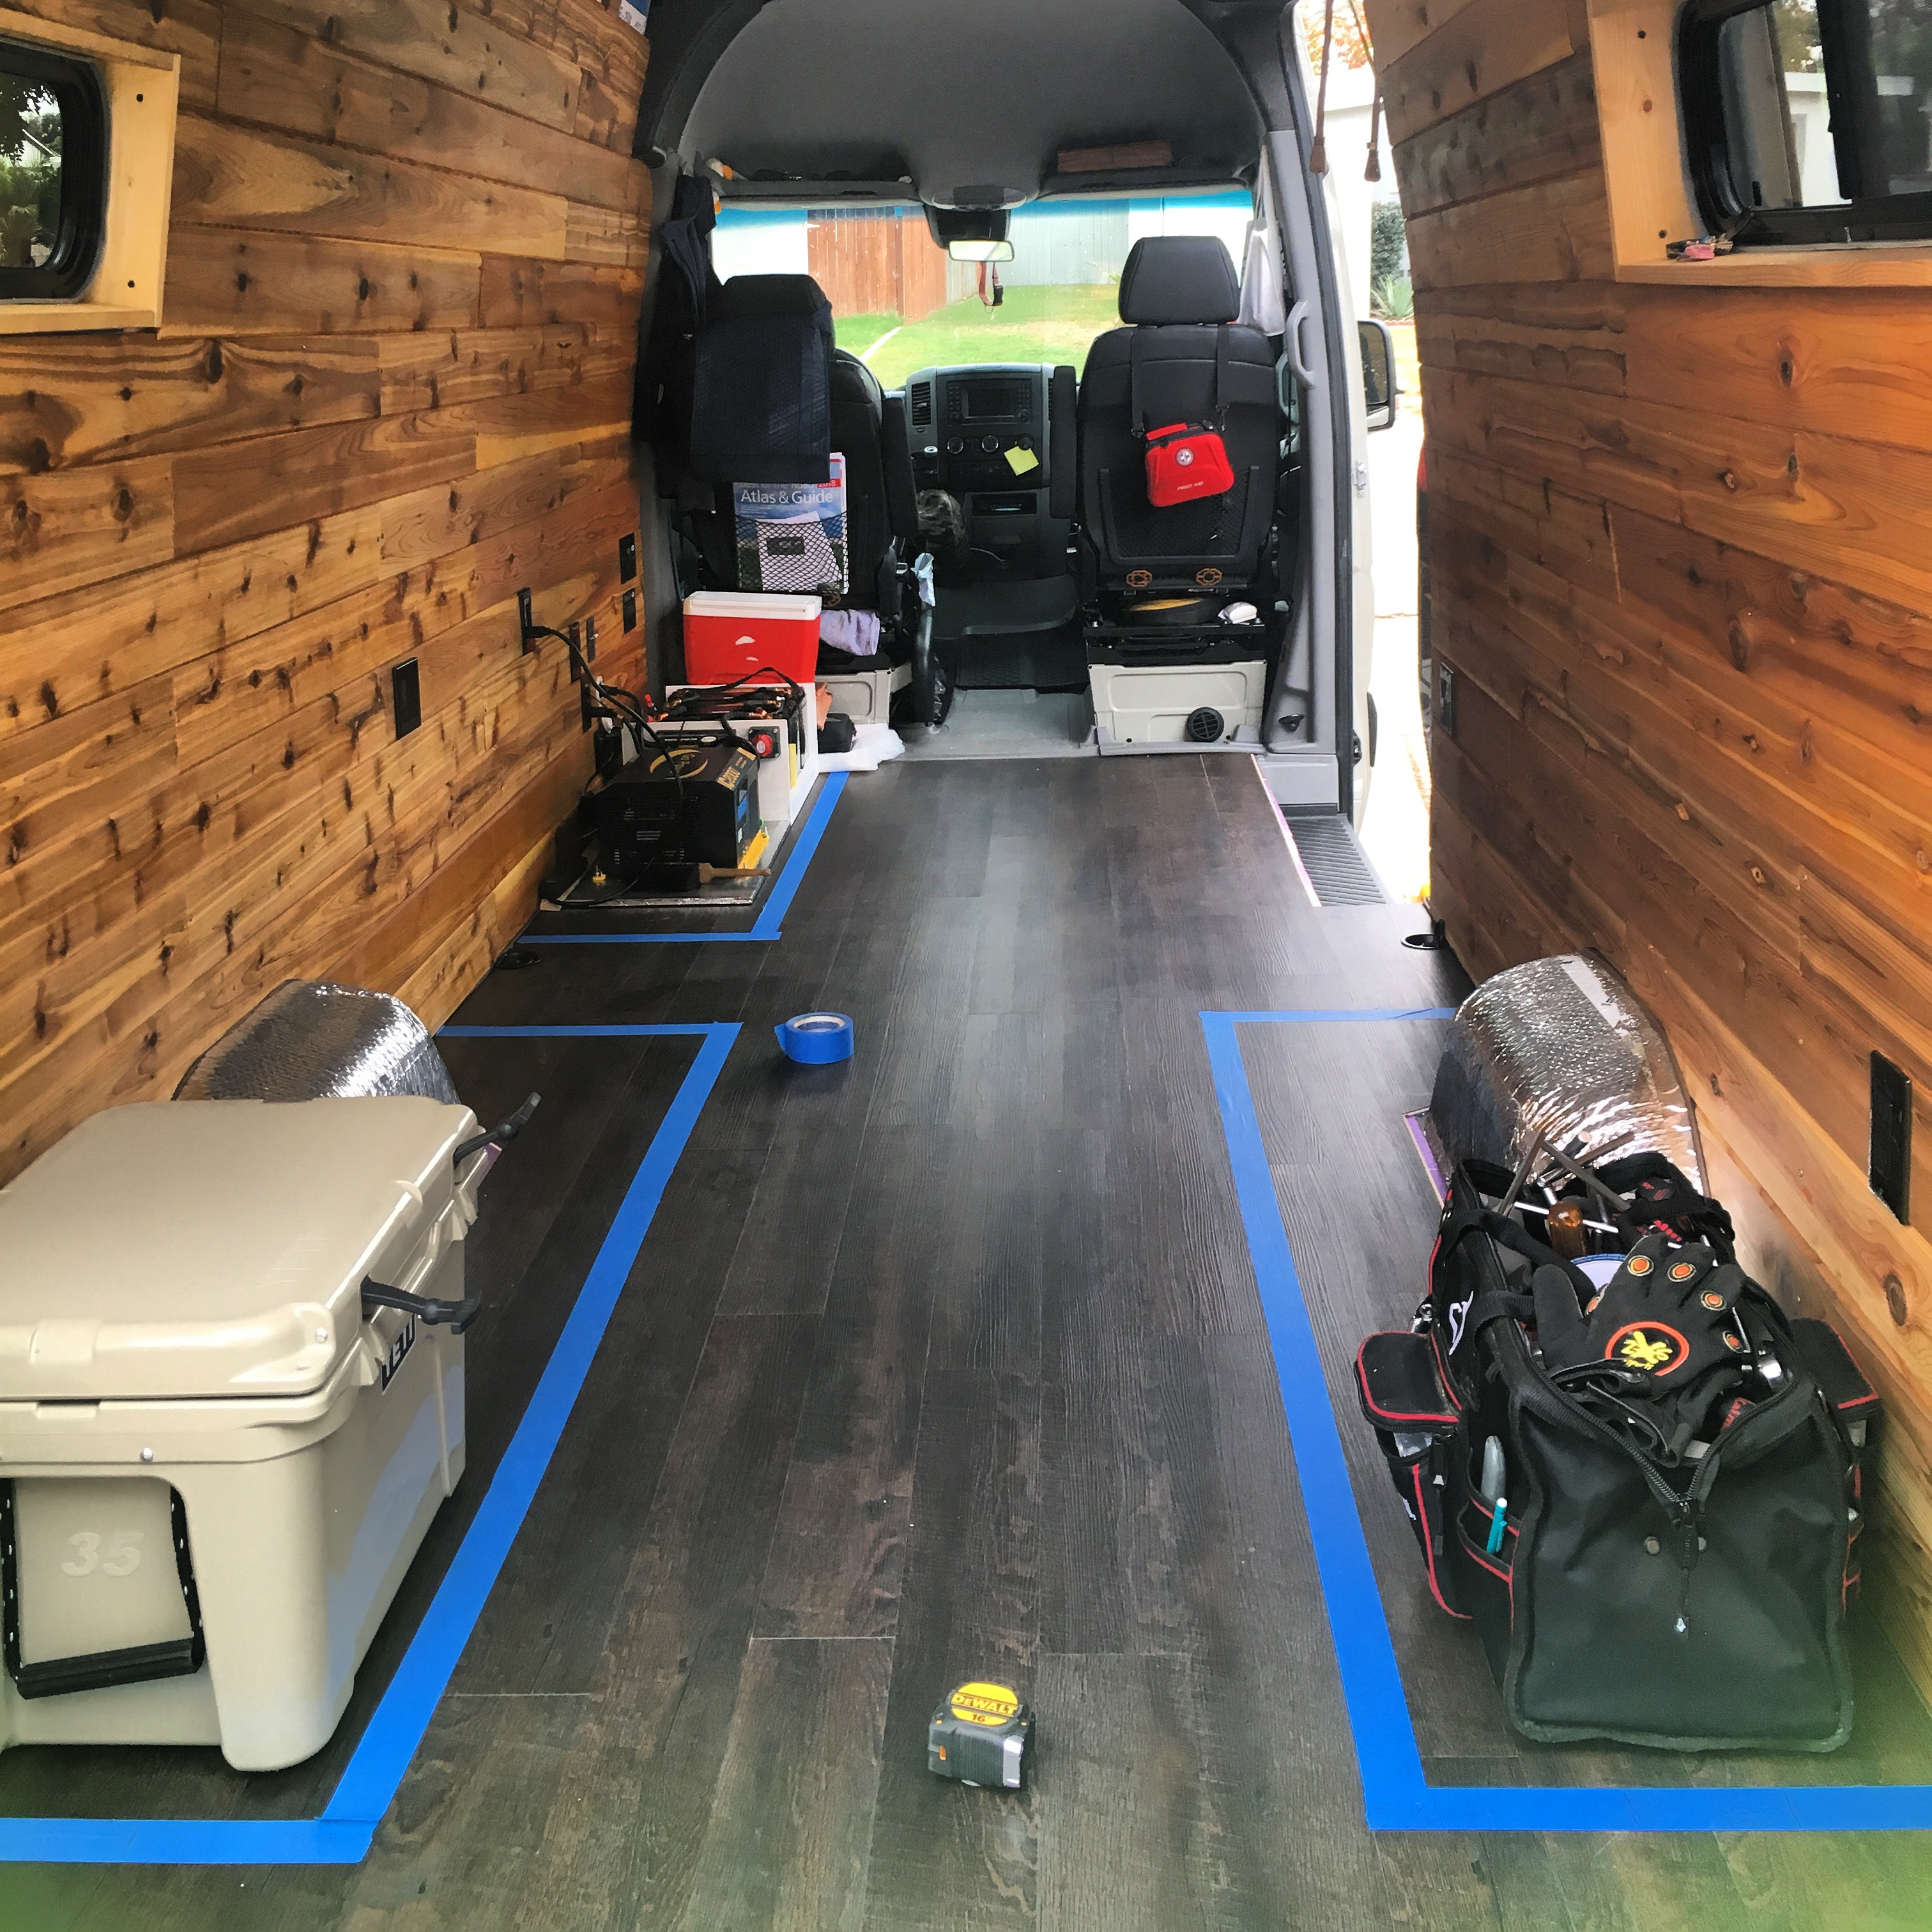 Dodge Conversion Van >> Sprinter Van Conversion Idea Photos Set 1 | Sprinter Van Outpost